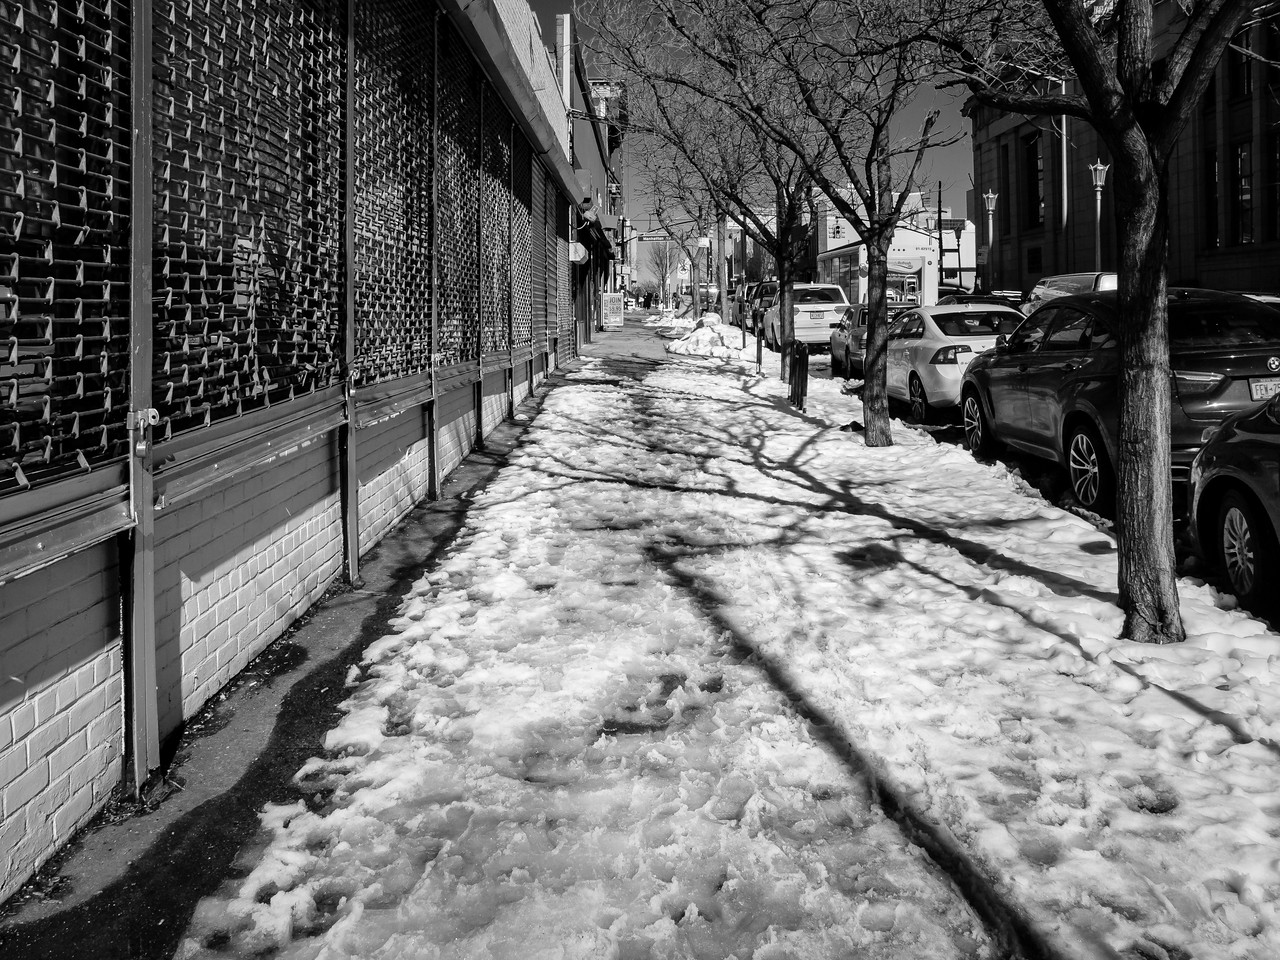 Winter in Greenpoint